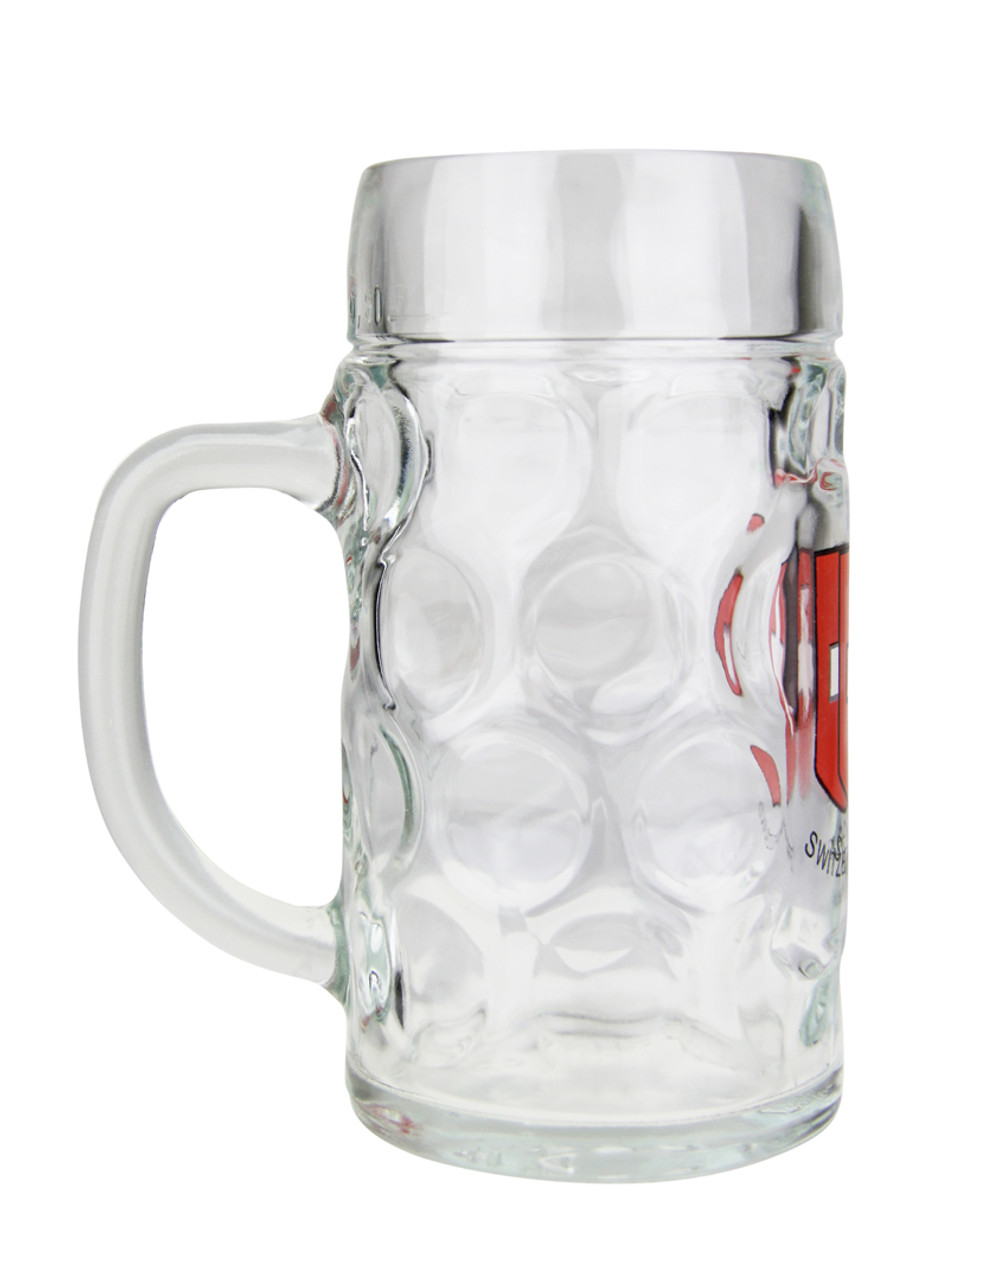 Add Custom Engraving to Swiss Cross Glass Beer Mug